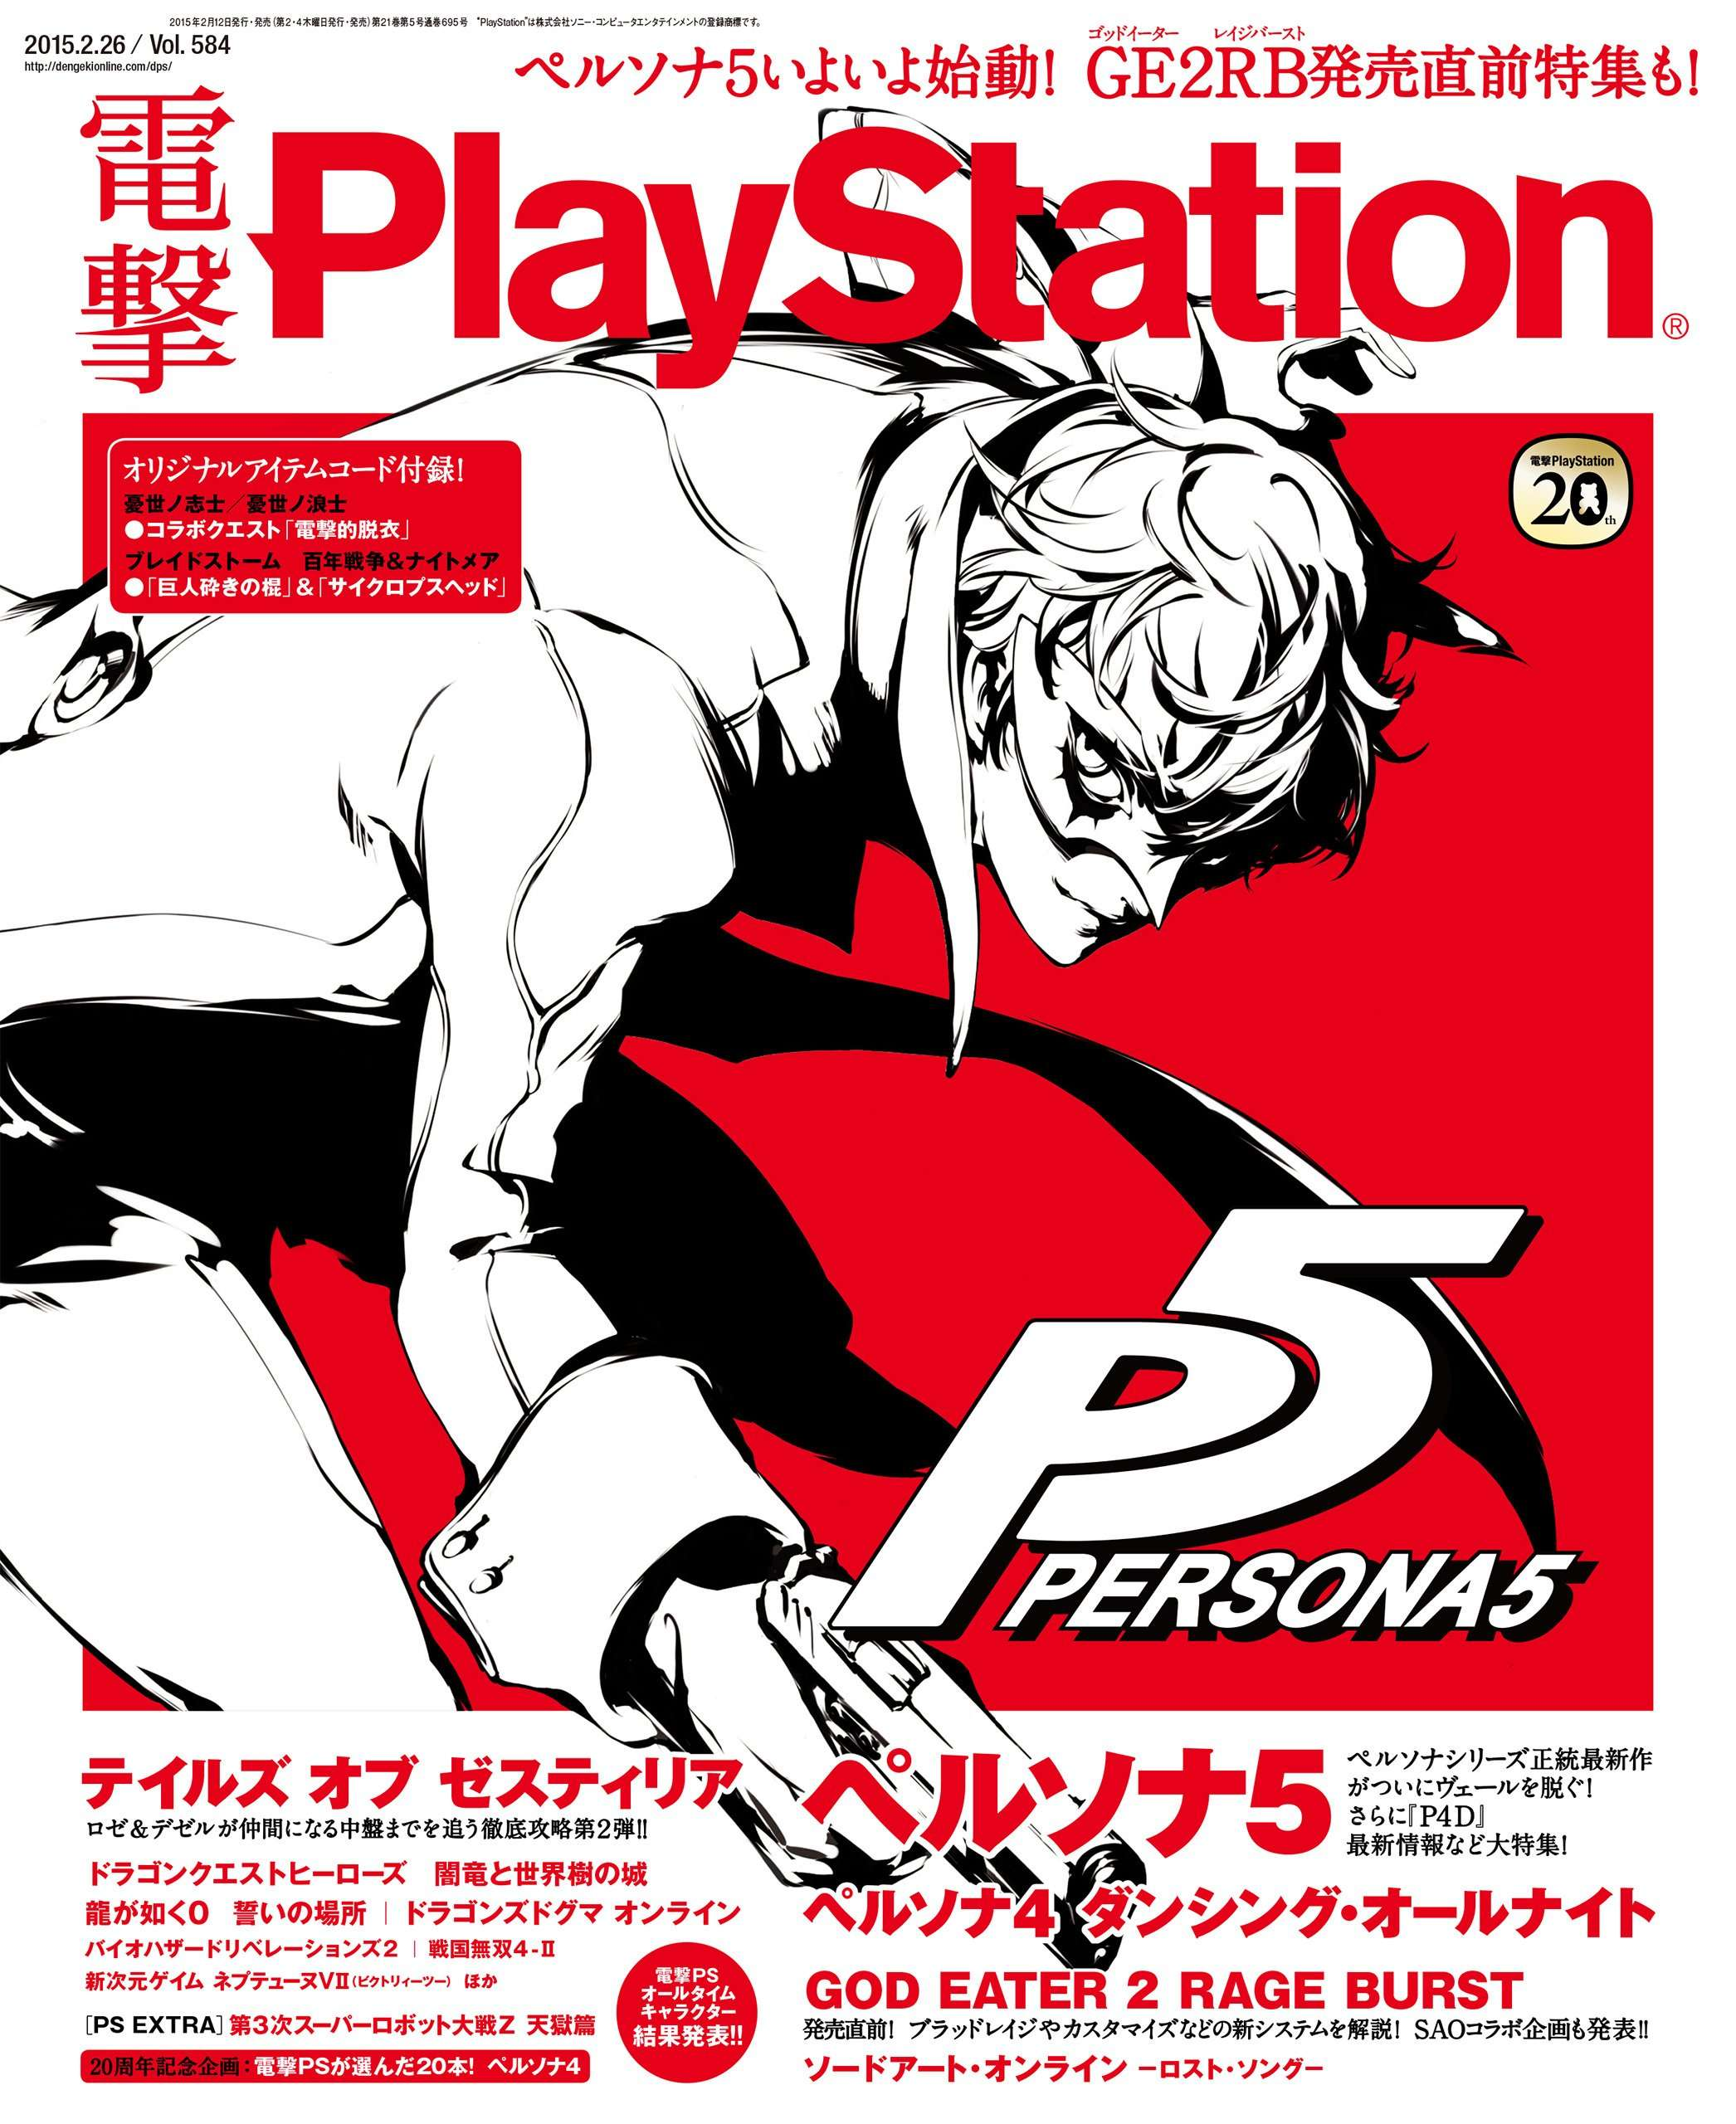 Dengeki PlayStation Persona 5 Cover